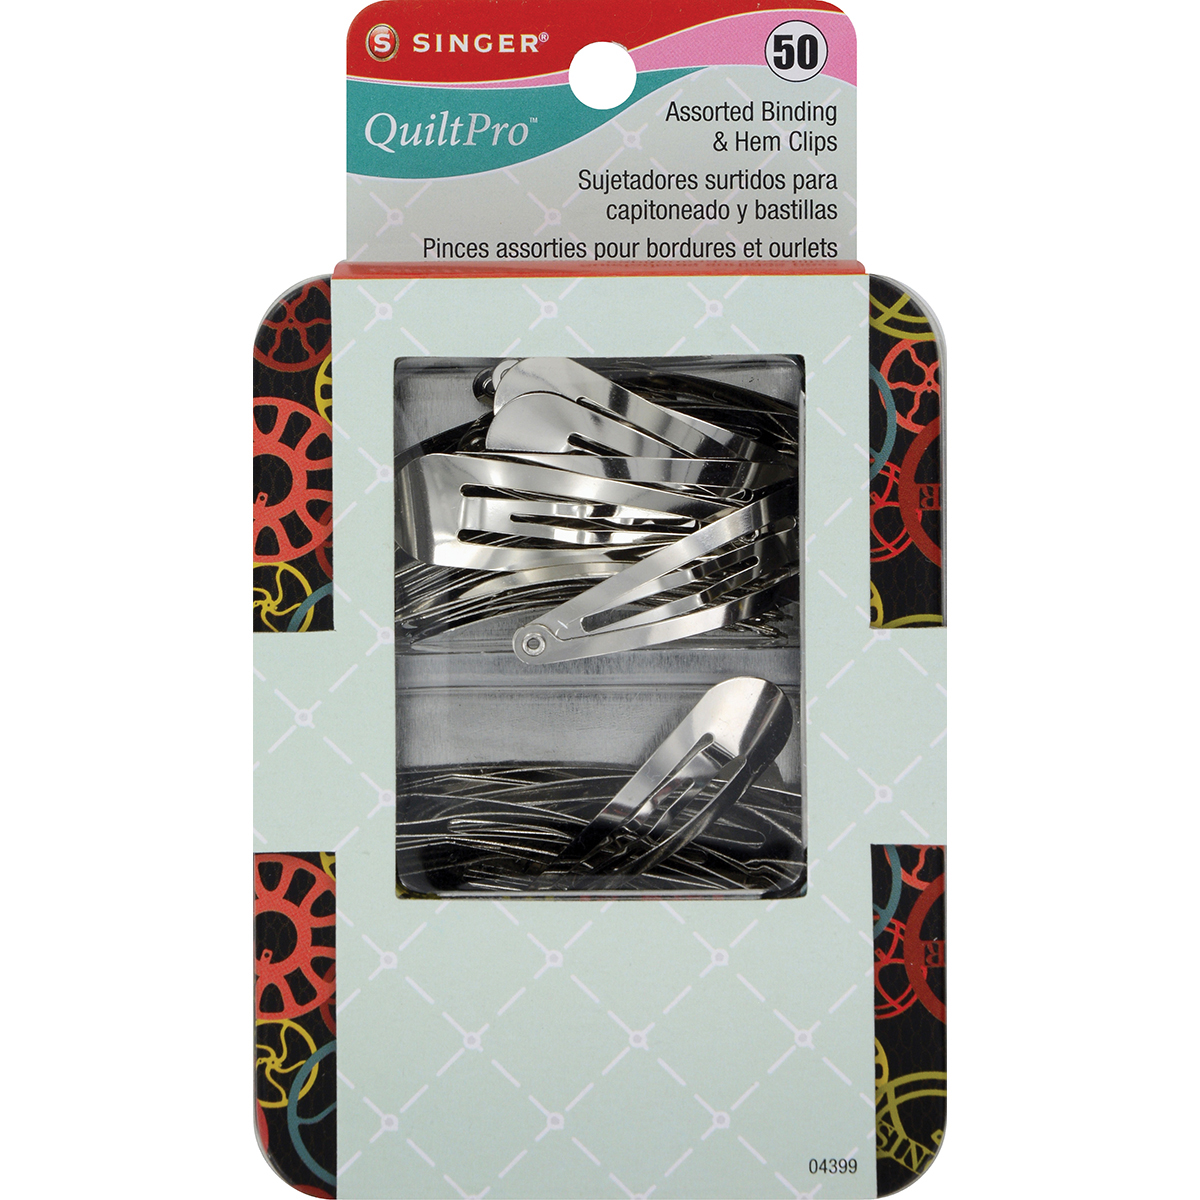 QuiltPro Assorted Binding & Hem Clips